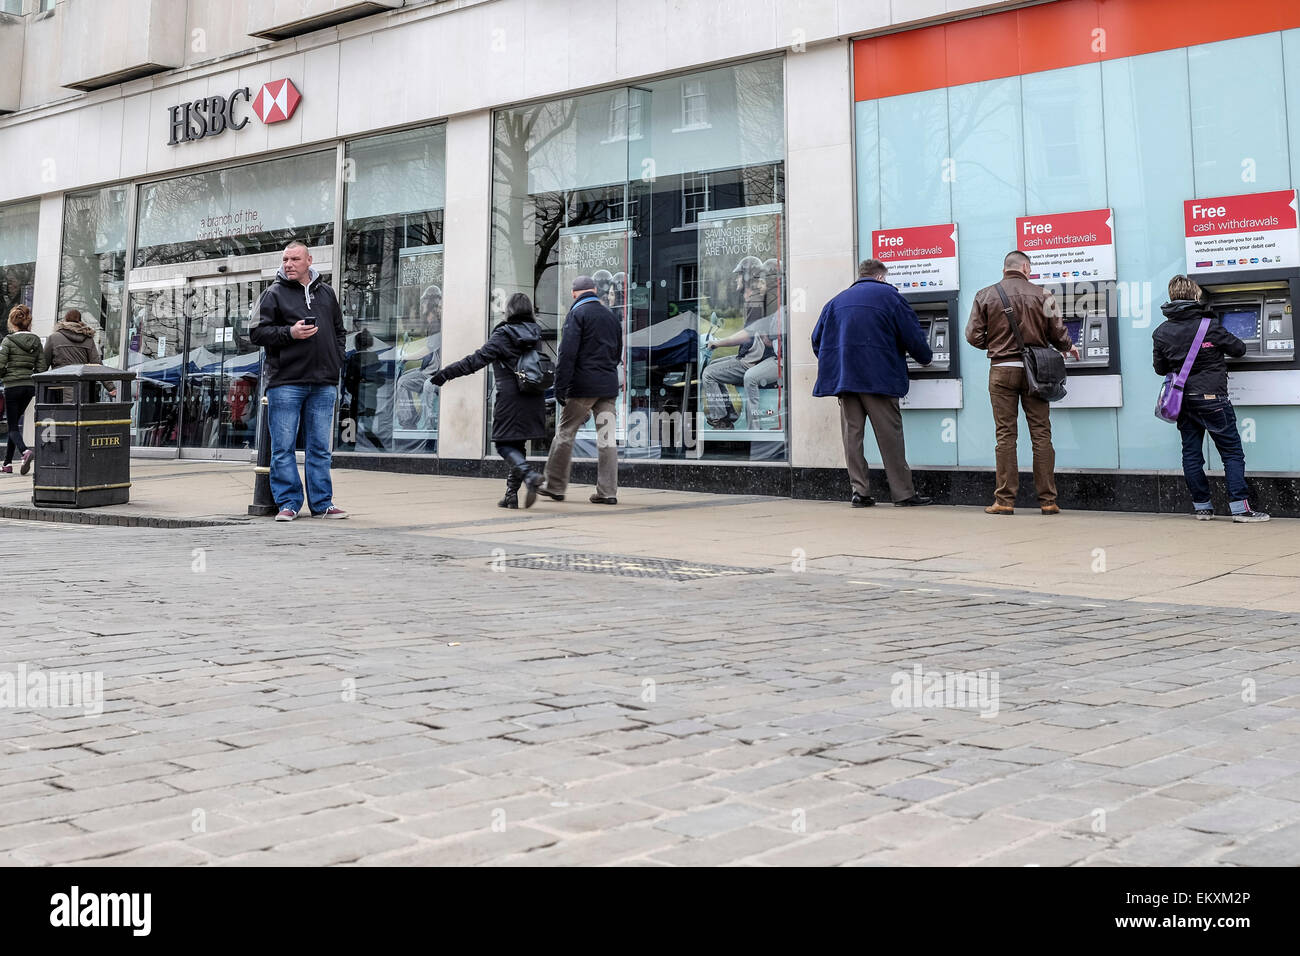 HSBC bank - York main branch in the city centre with people using cashpoints ATMs a cashpoint ATM. Stock Photo